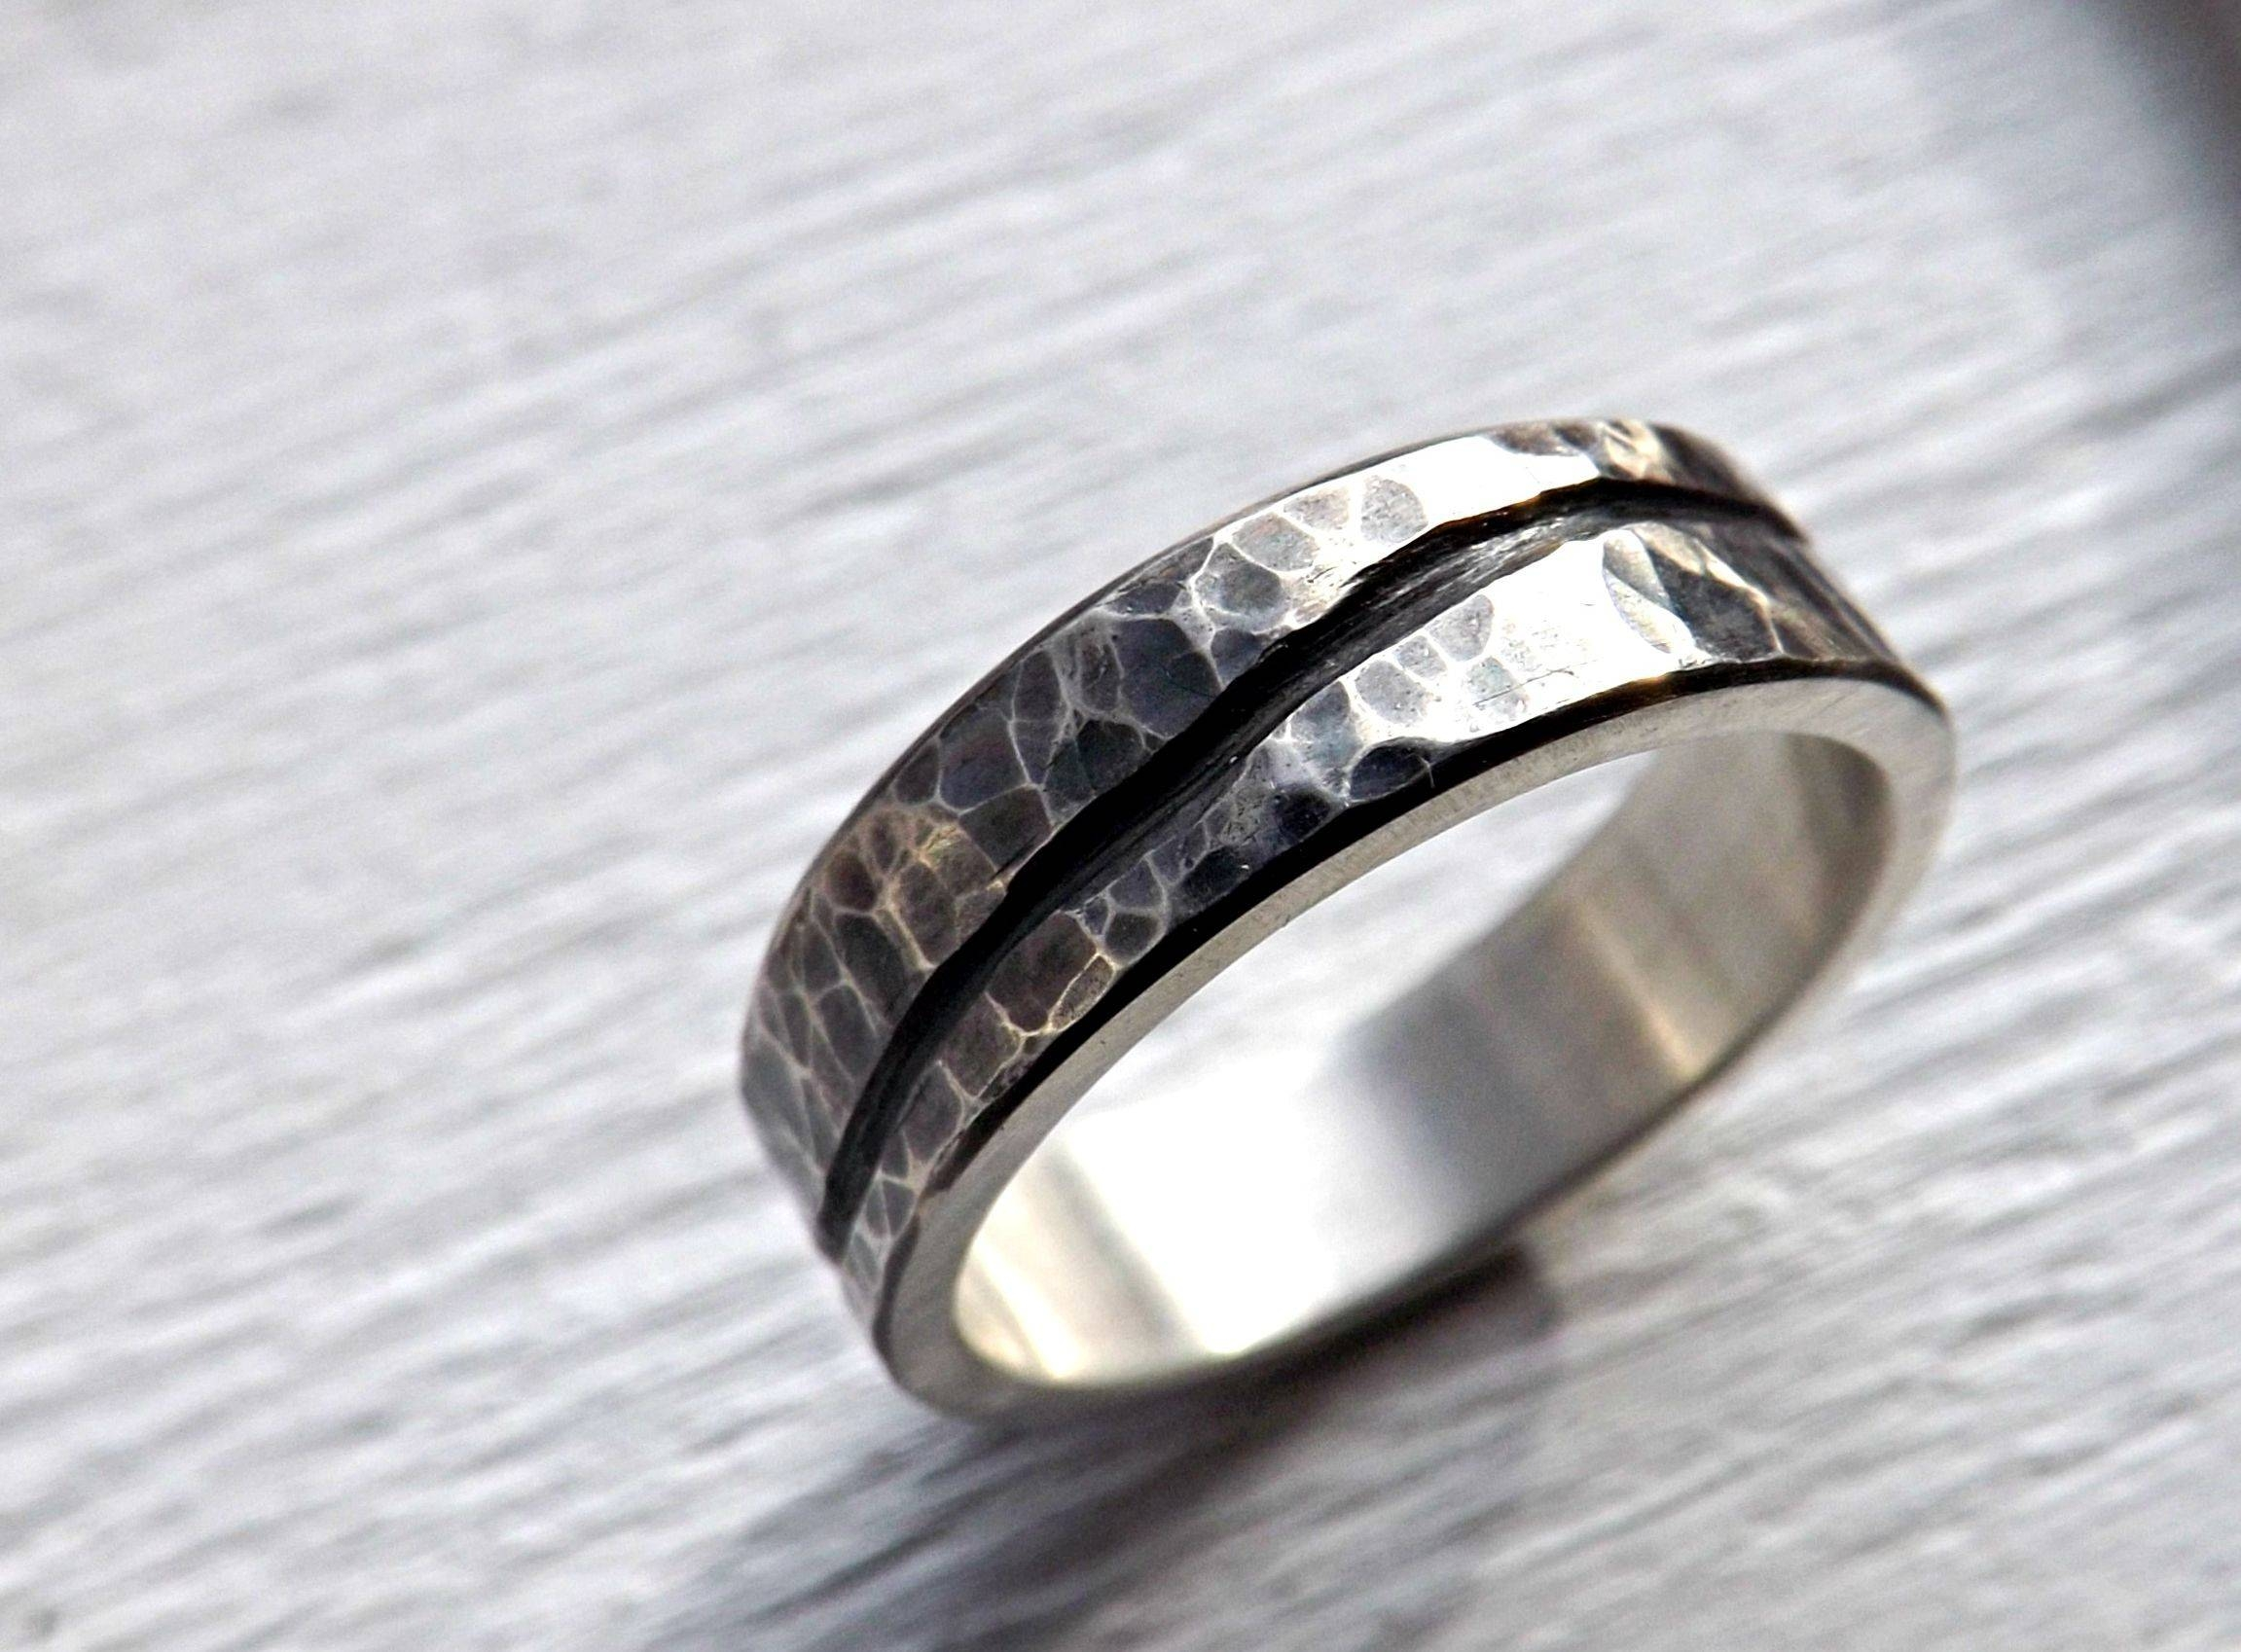 of matvuk wedding ring rings duck inspirational kuhou com lovely band